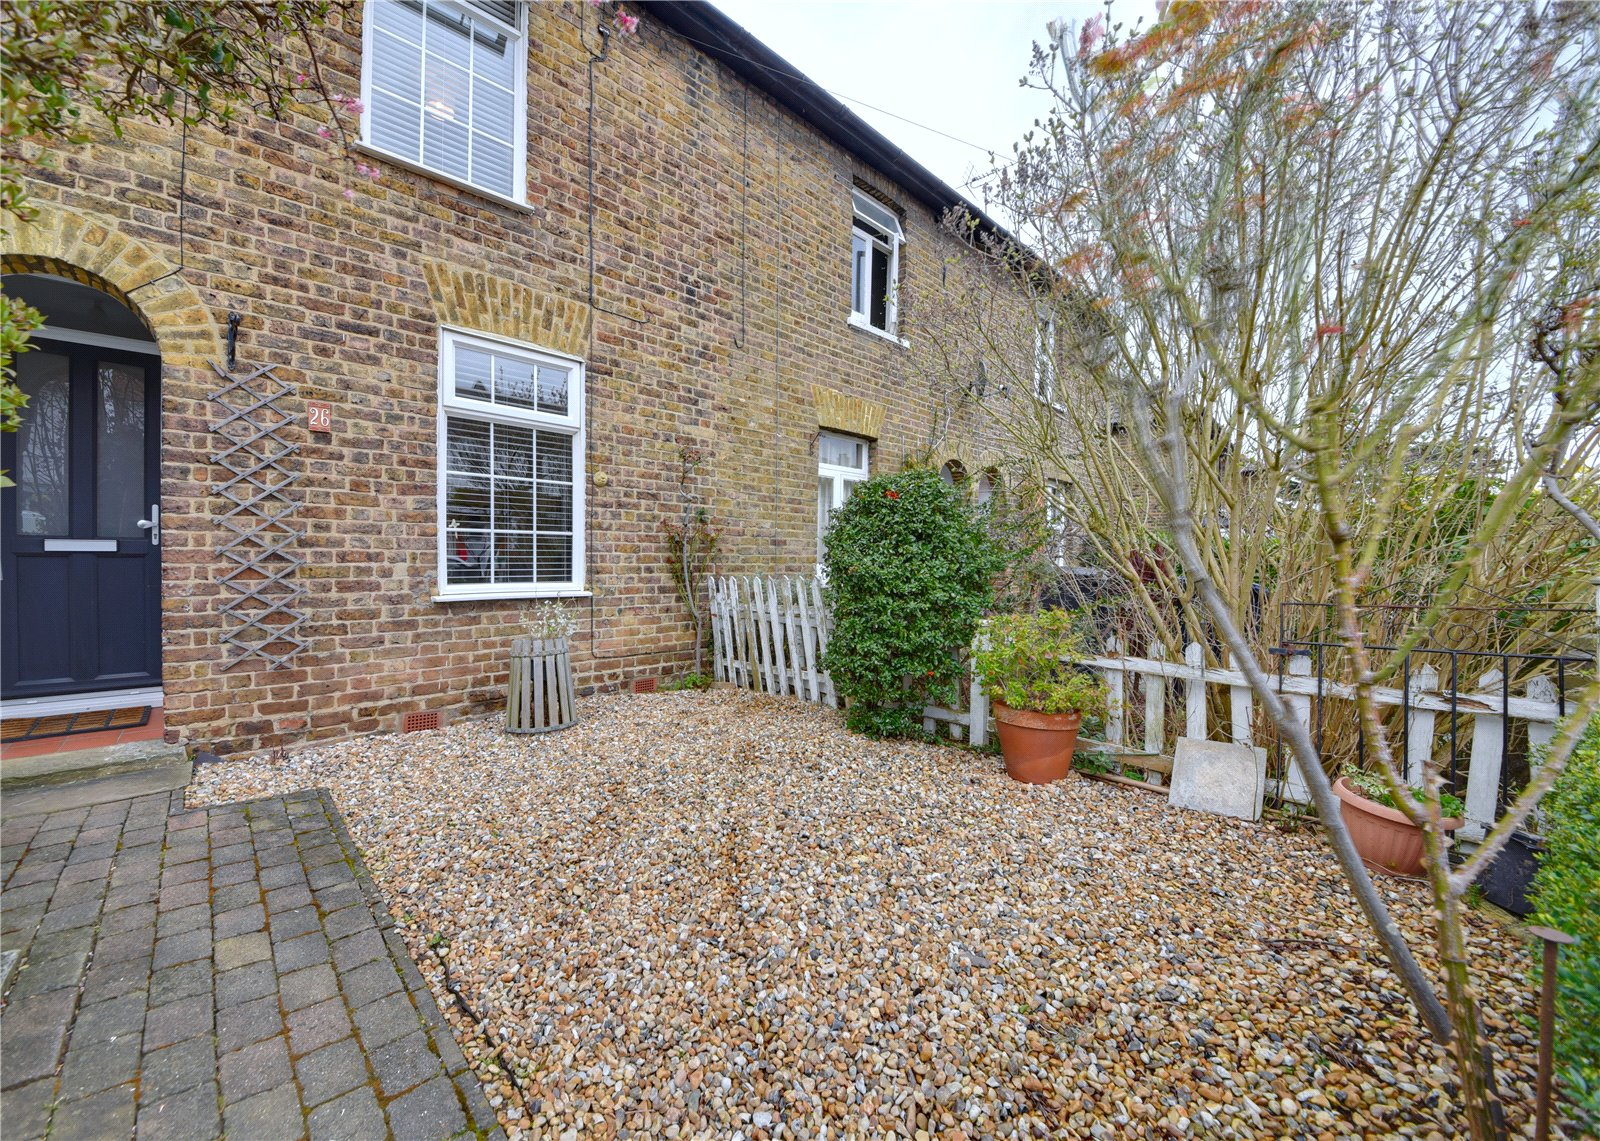 2 bed house for sale in London, N12 9JN 7